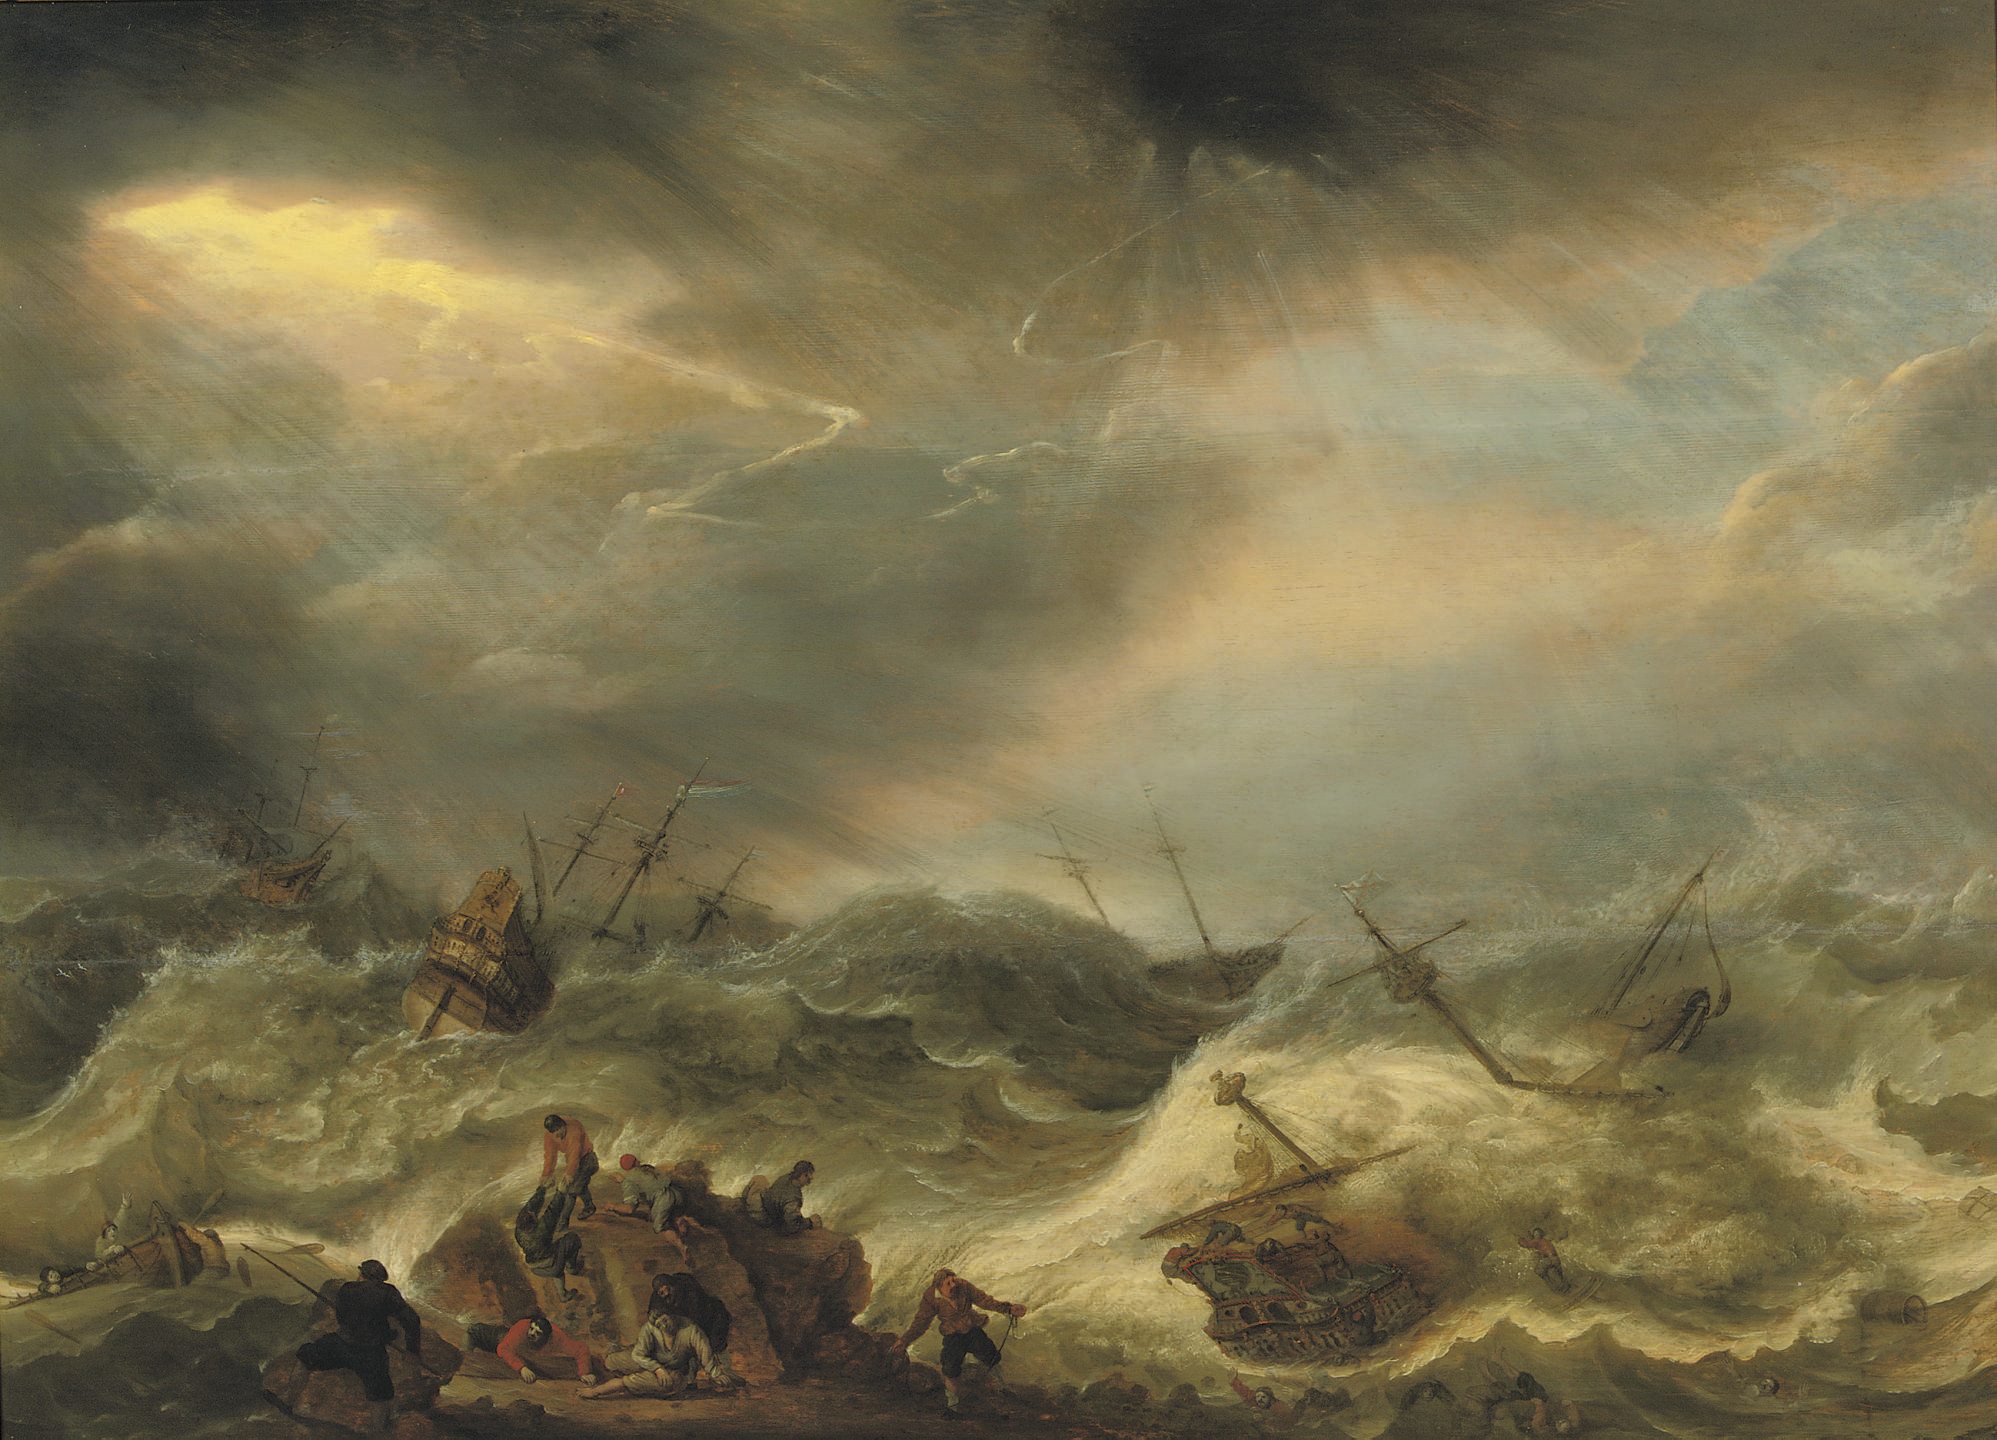 A shipwreck in stormy waters